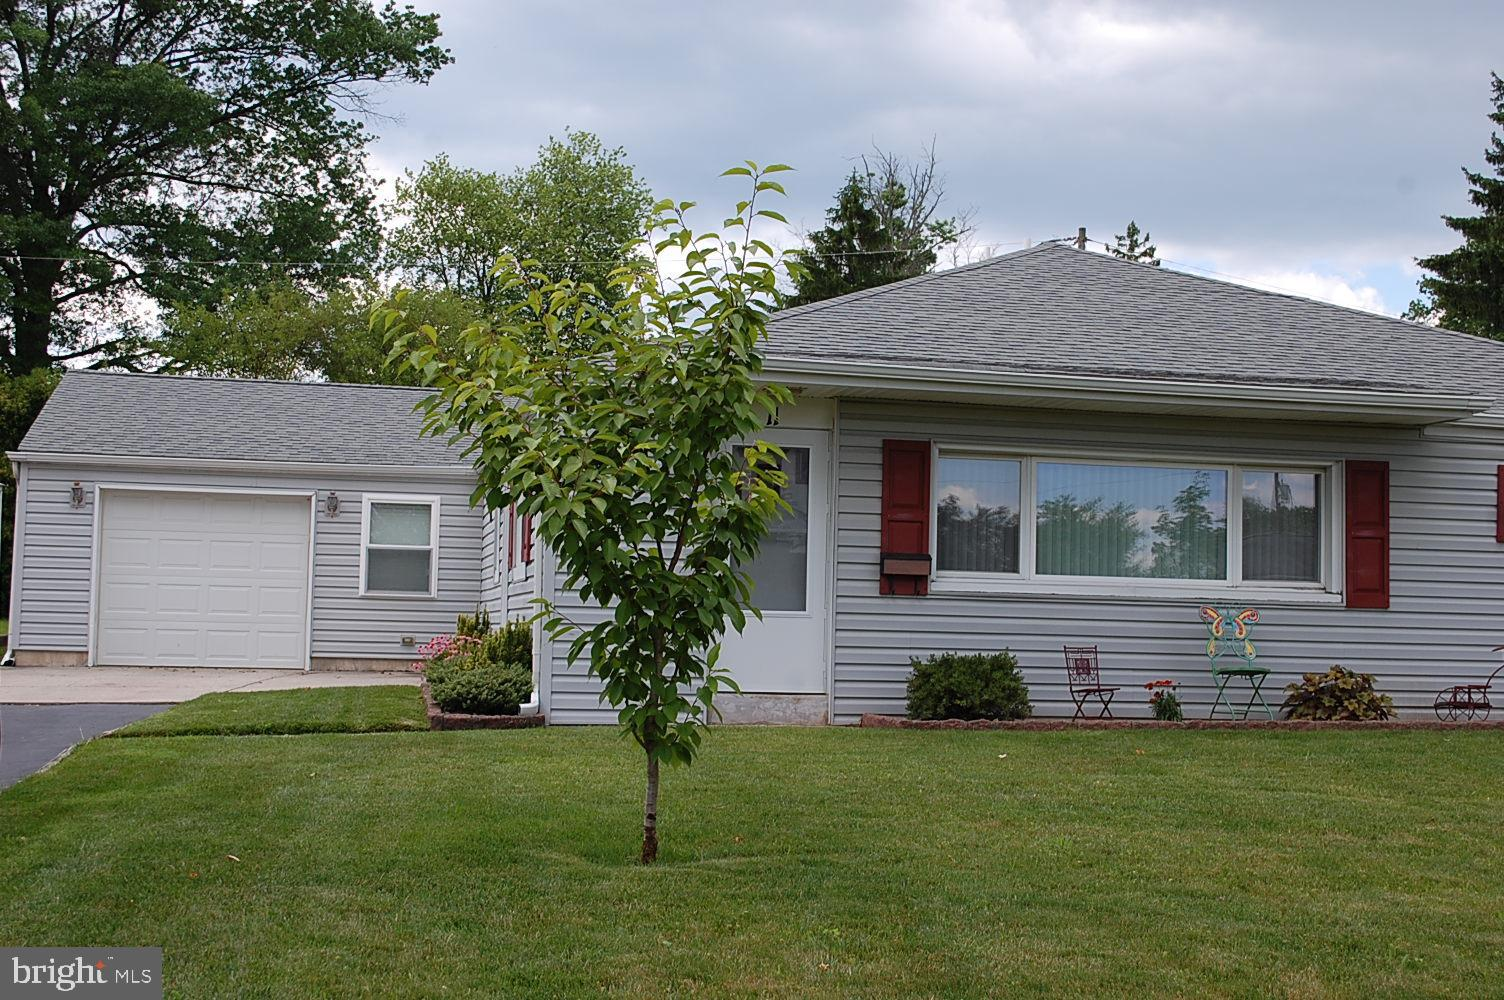 Pleasant 11 Laurel Lane Plymouth Meeting Pa 19462 Mls Pamc616232 Re Max Of Reading Home Interior And Landscaping Fragforummapetitesourisinfo